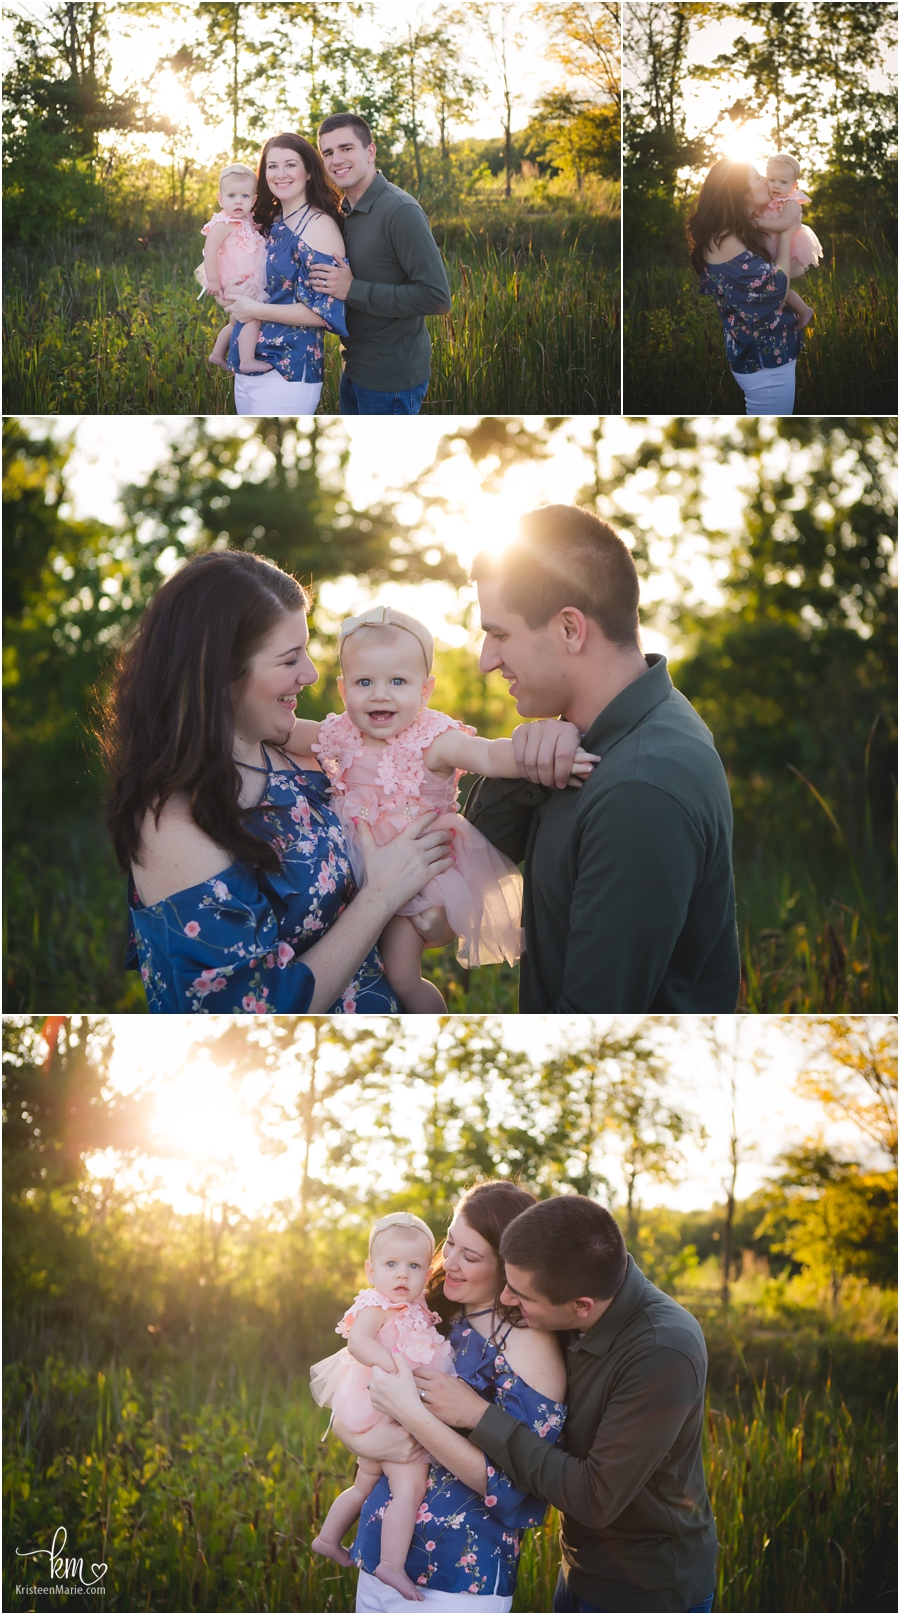 family pictures at sunset in Indianapolis, IN